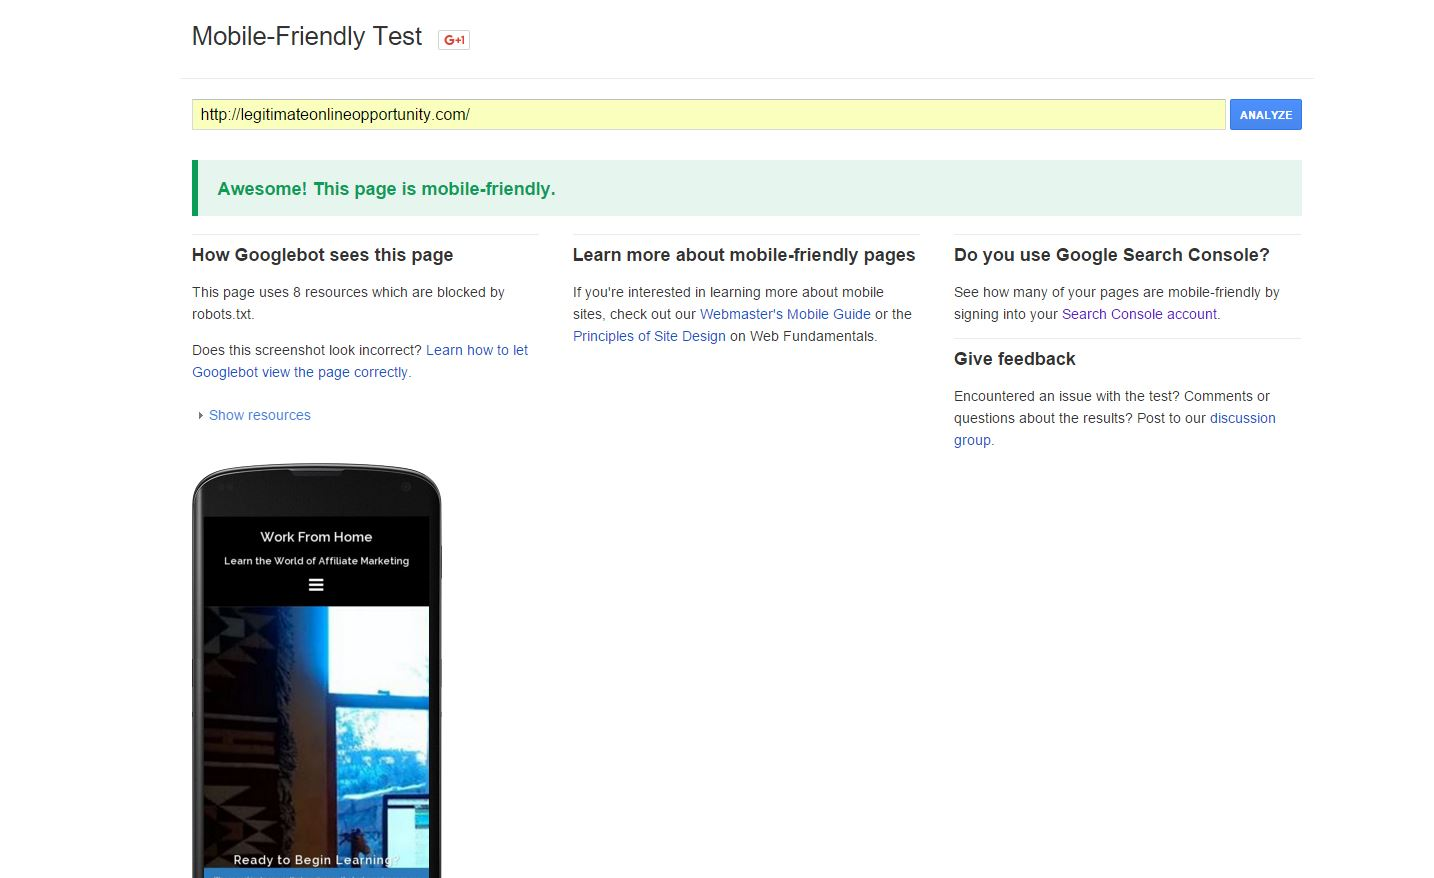 click here to test if your website is mobile friendly or not